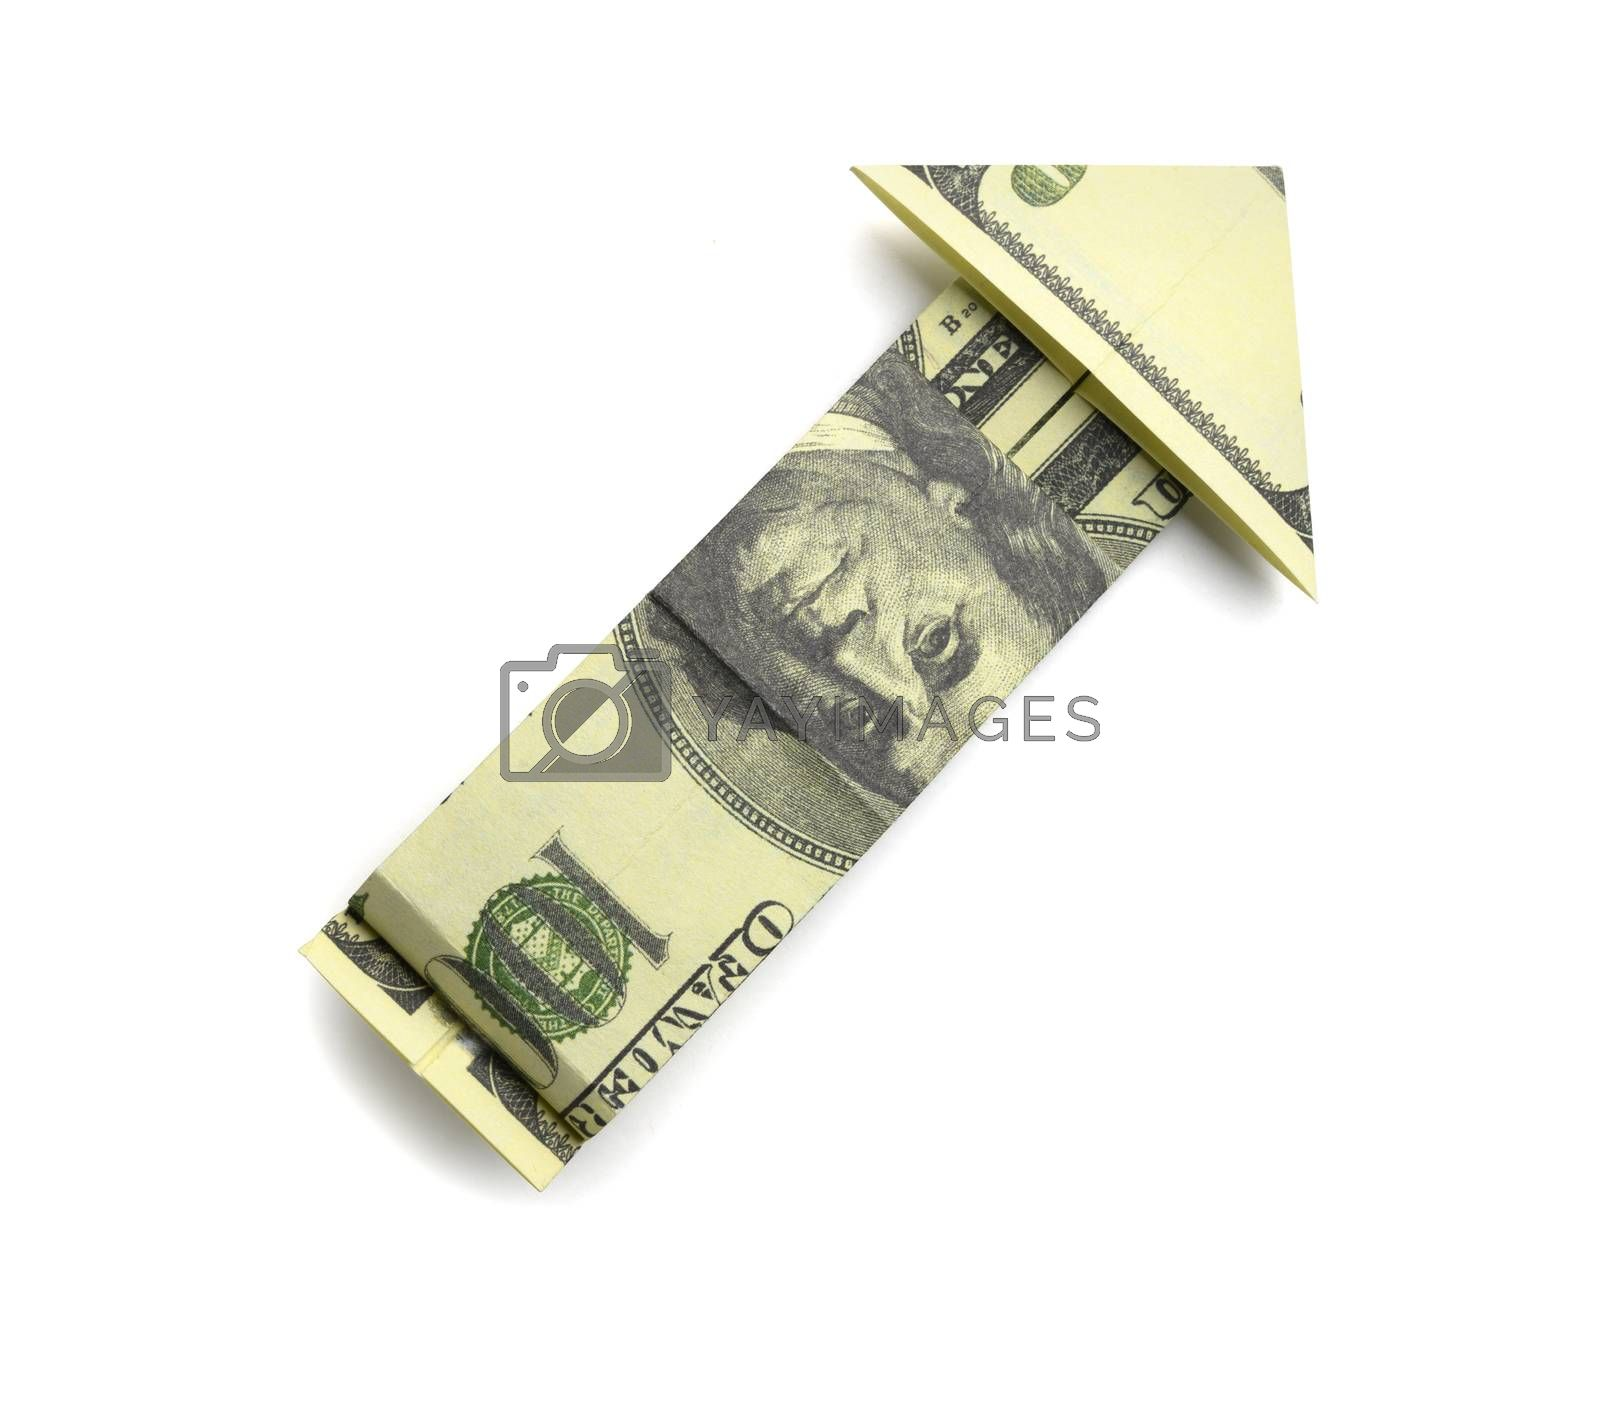 100 us dollars in the shape of an arrow on a white background.